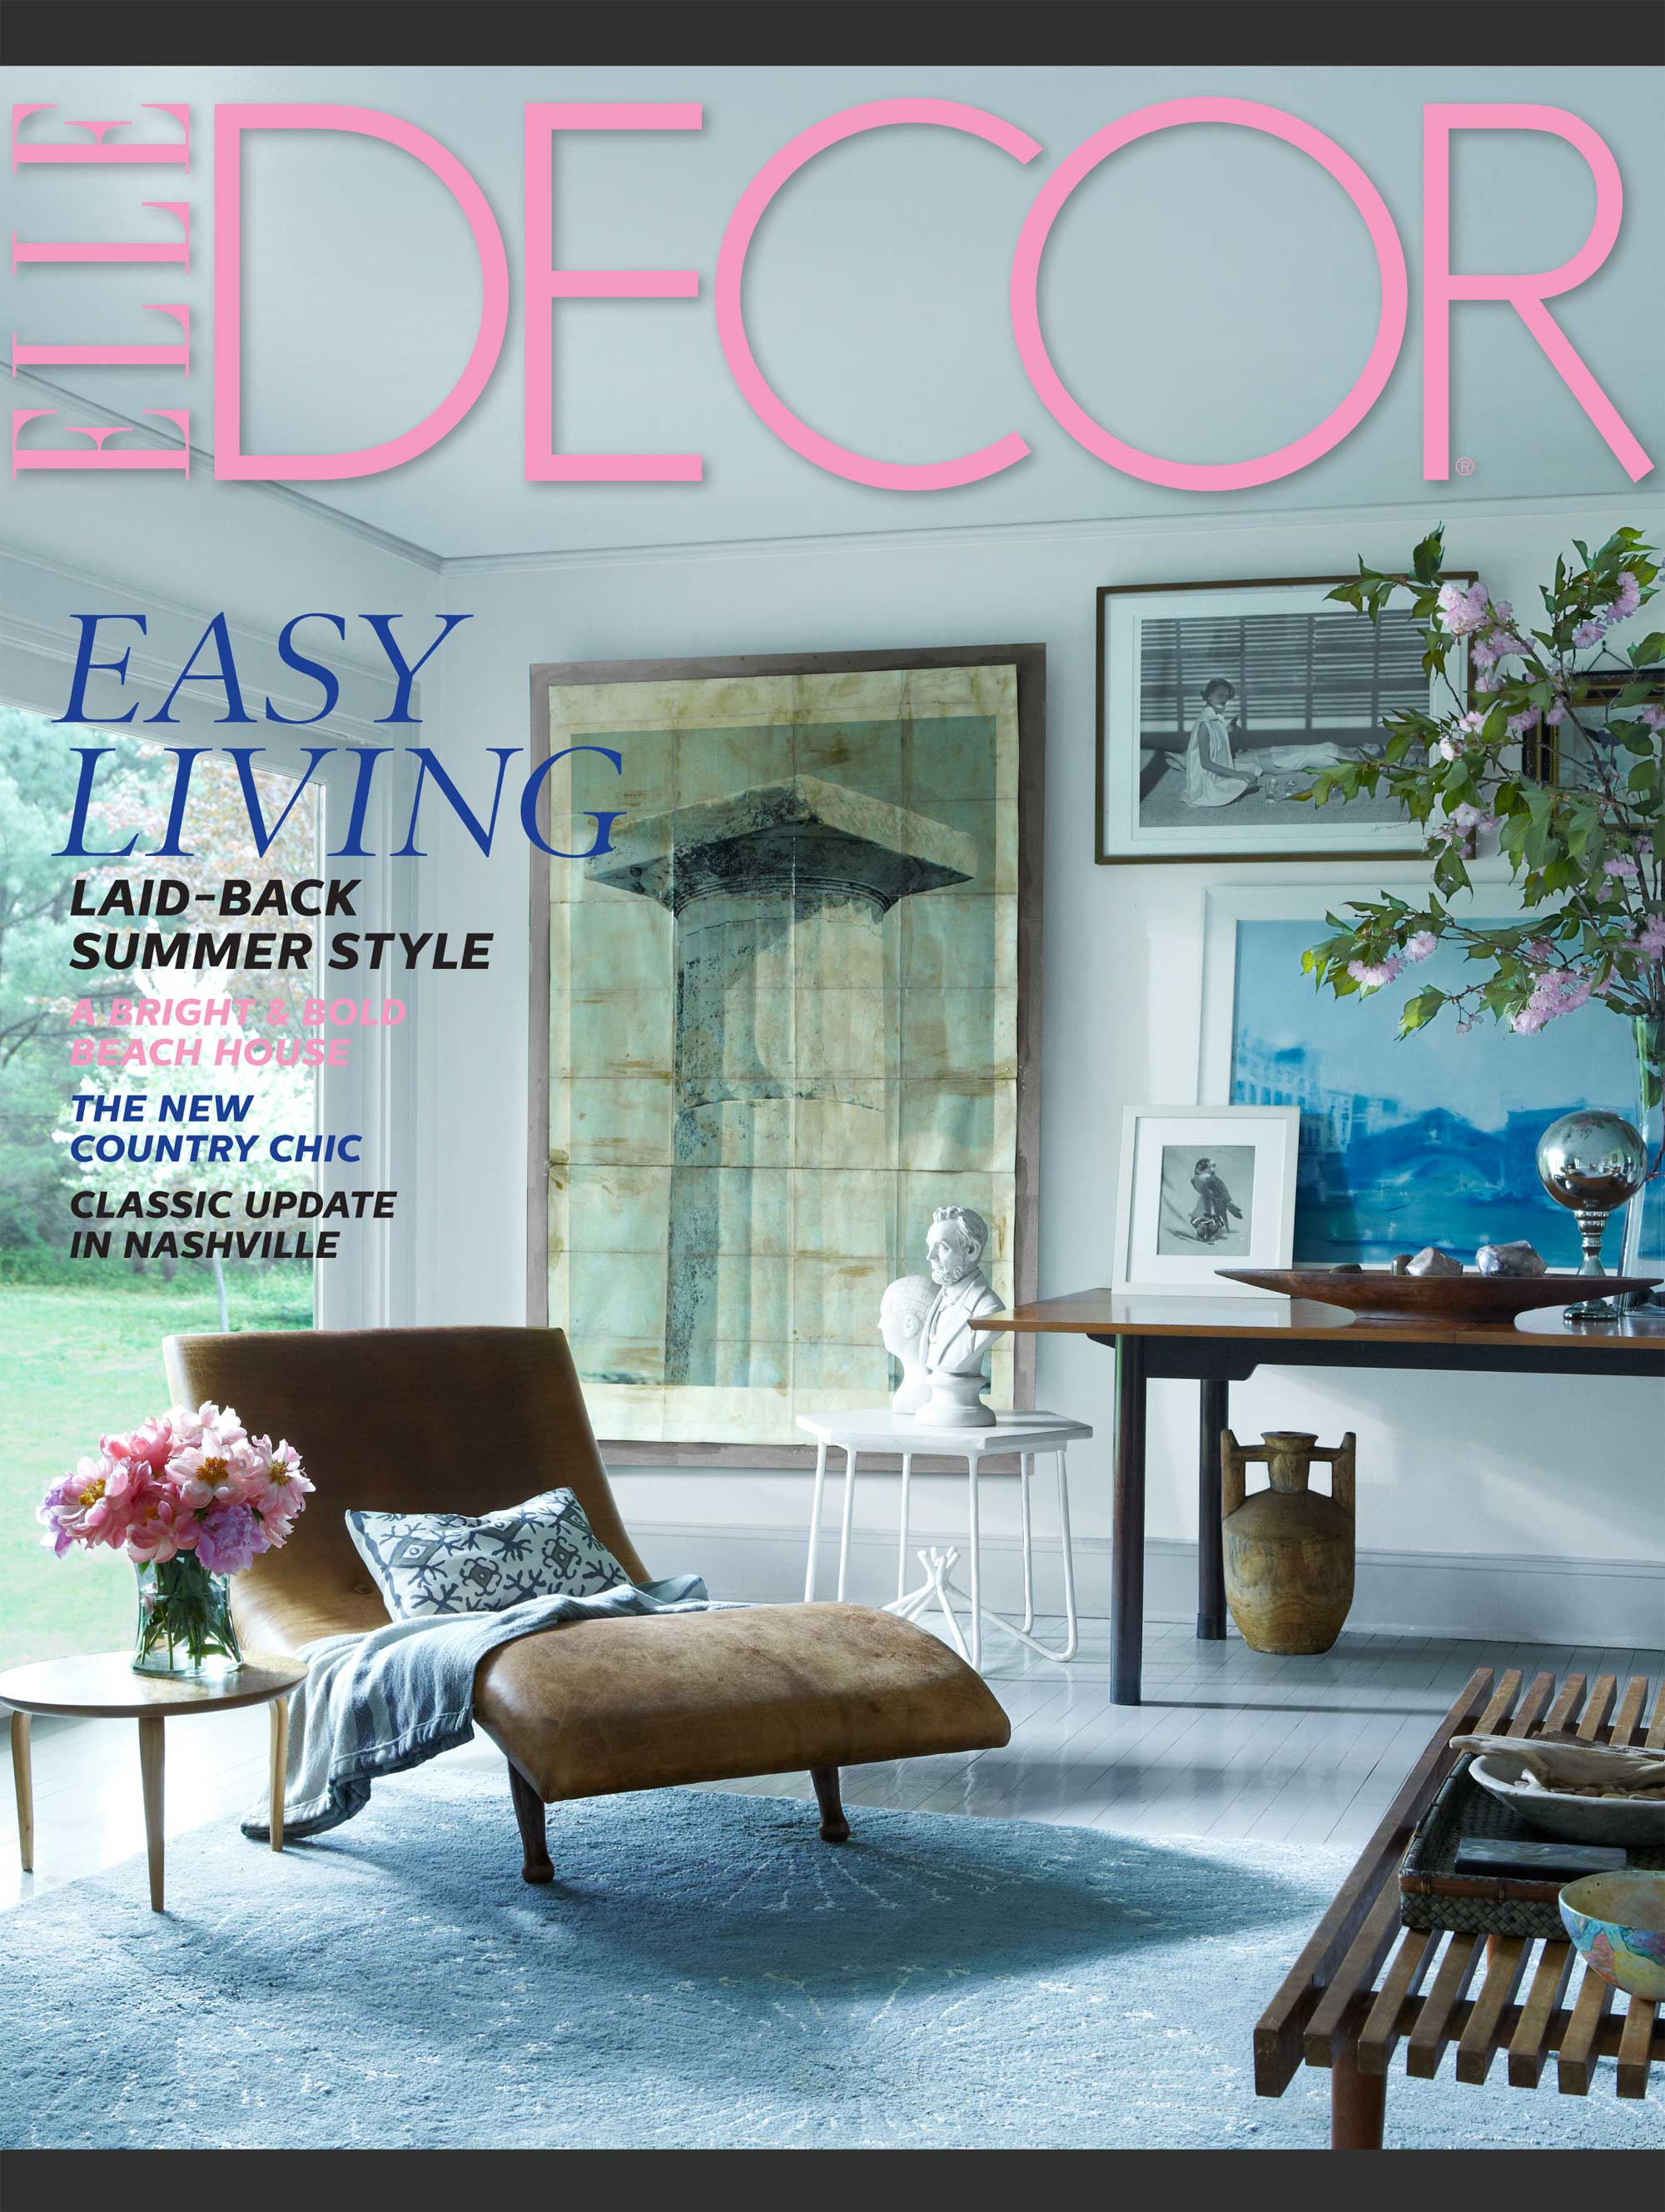 Elle Decor July August 2014 Cover And Story Interiors By